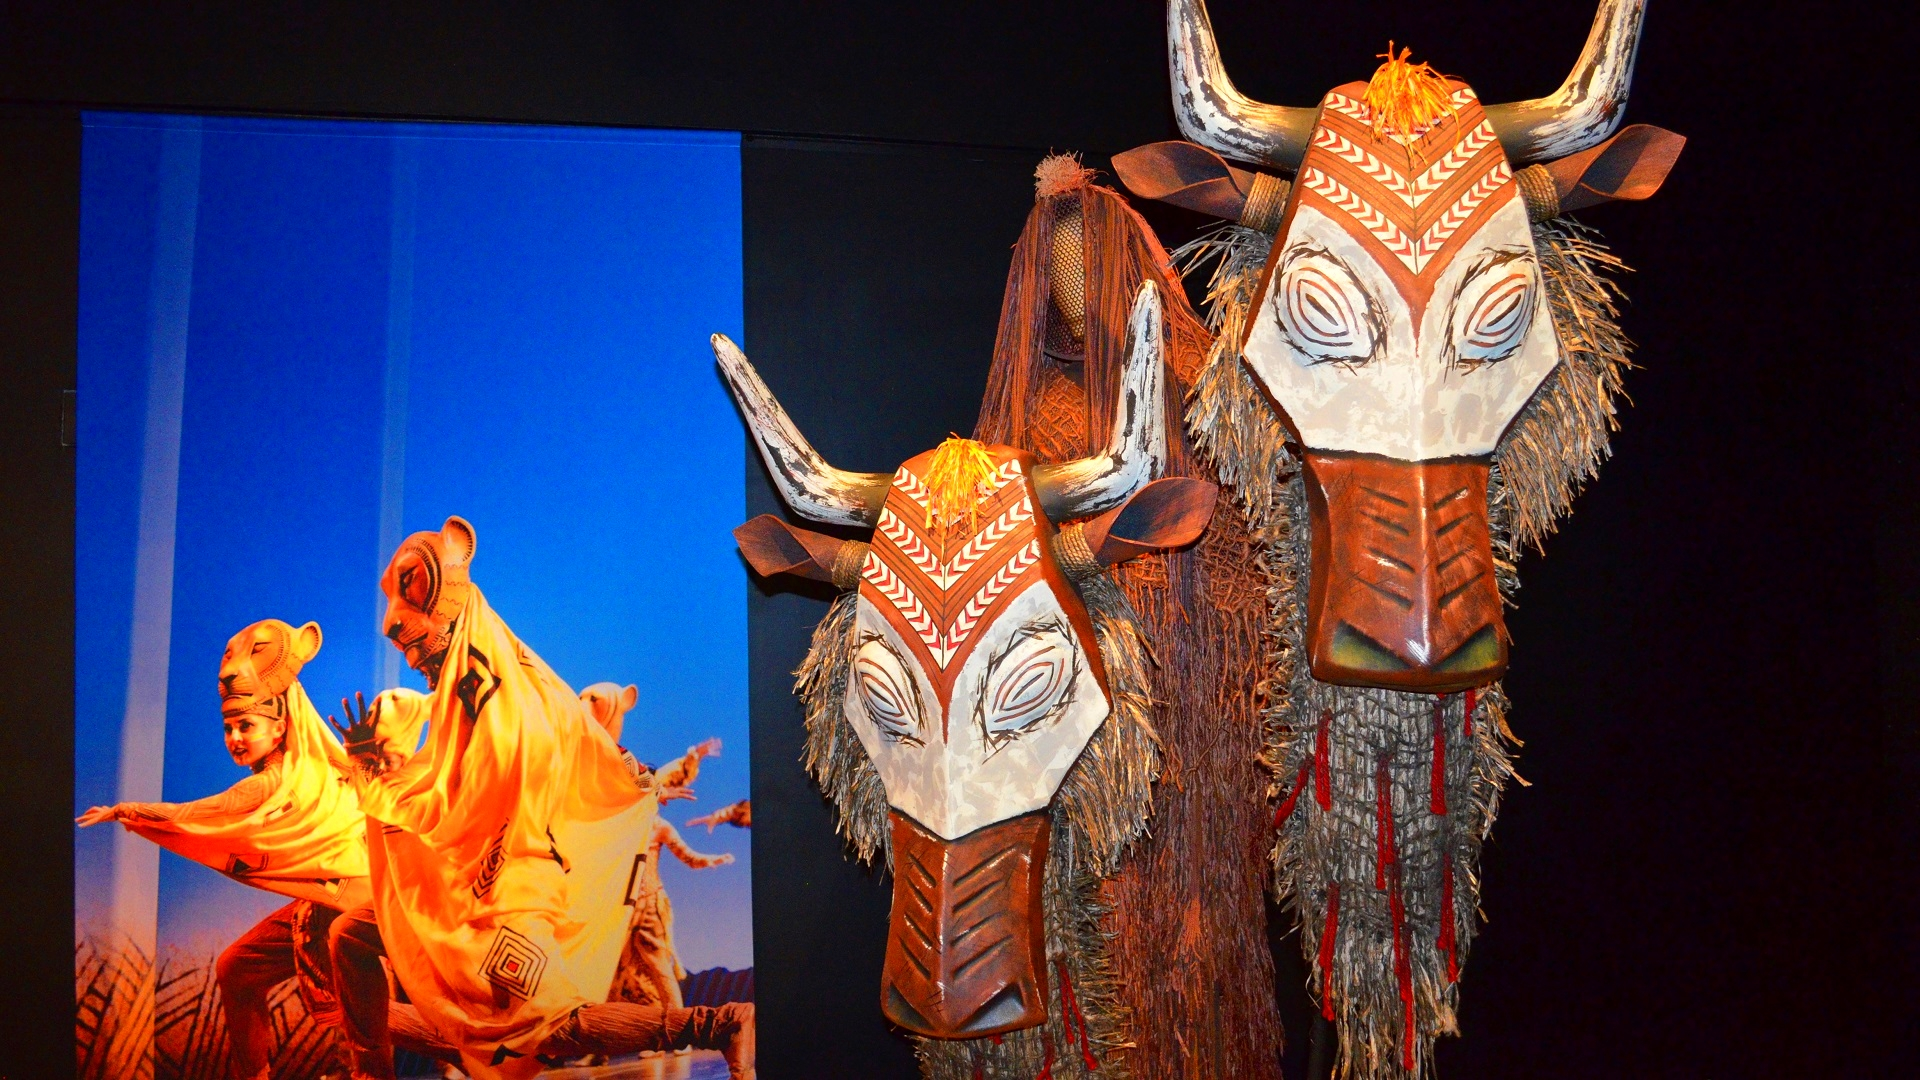 Wildebeest Mask From The Lion King Musical Exhibit In